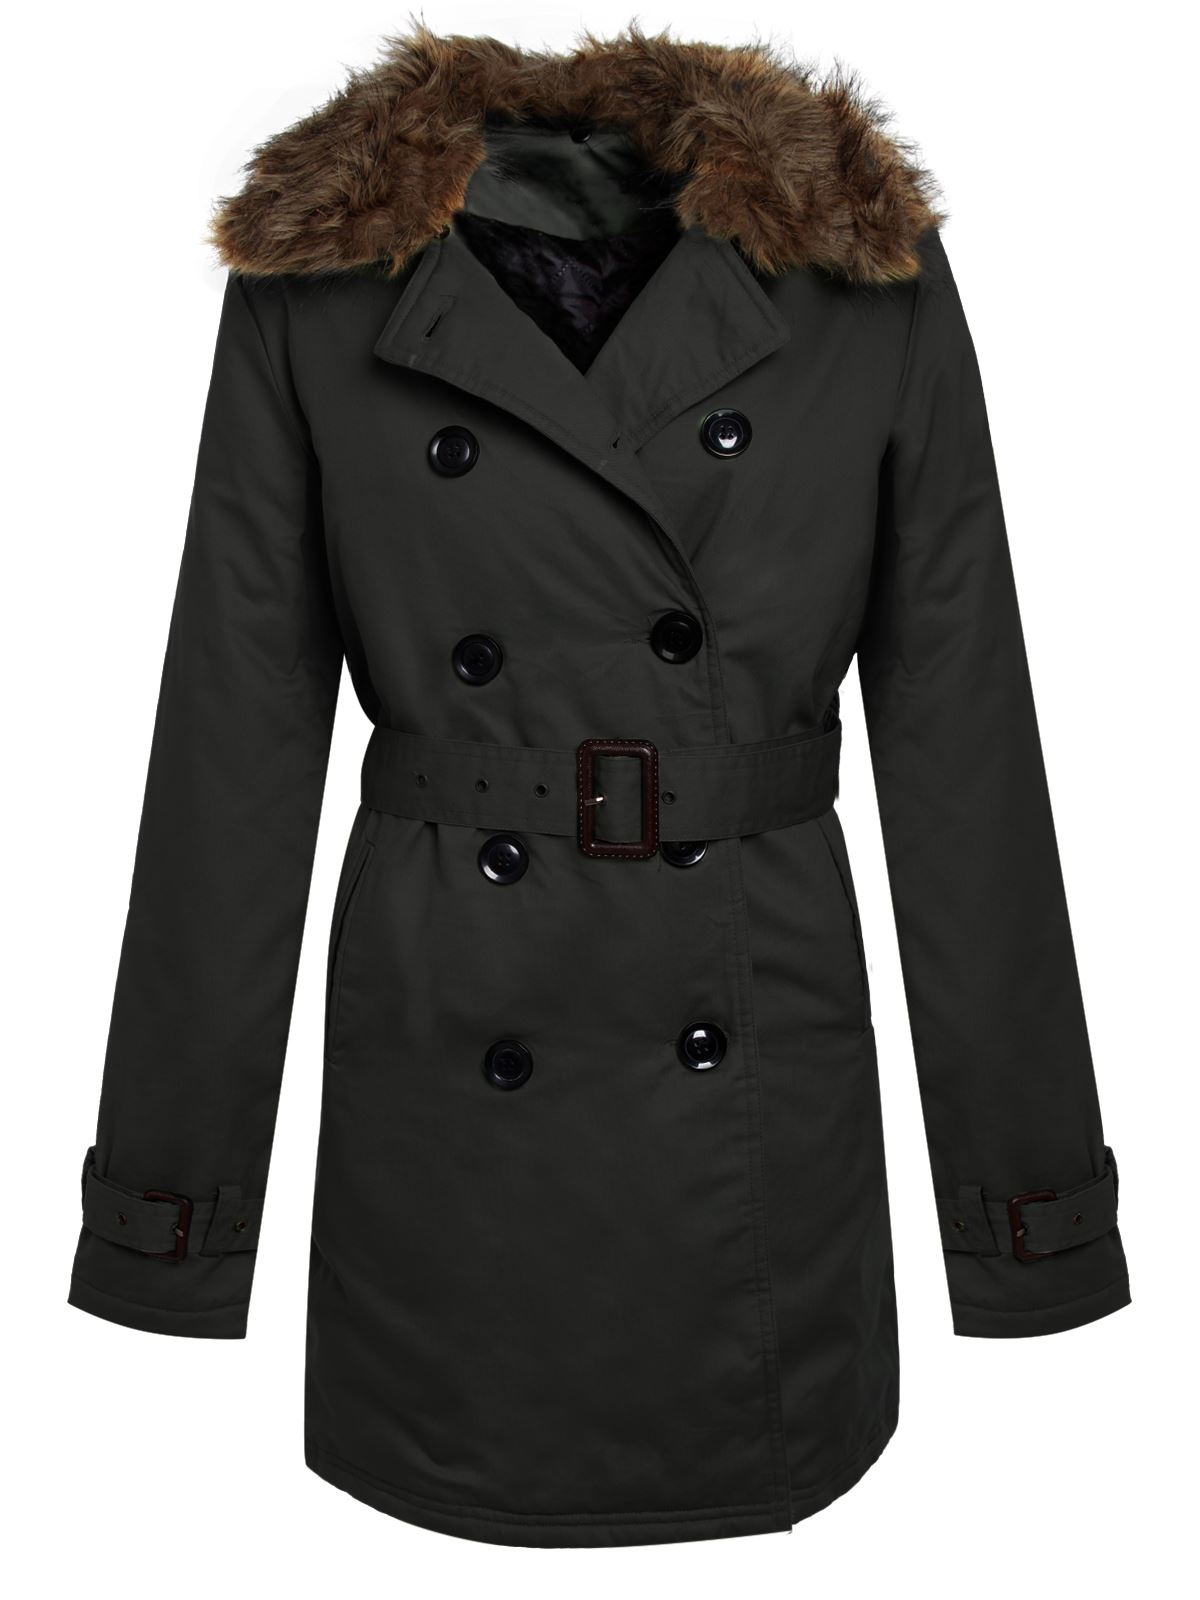 WOMENS-LADIES-BELTED-TRENCH-JACKET-DOUBLE-BREASTED-FUR-COLLAR-MAC-PADDED-COAT